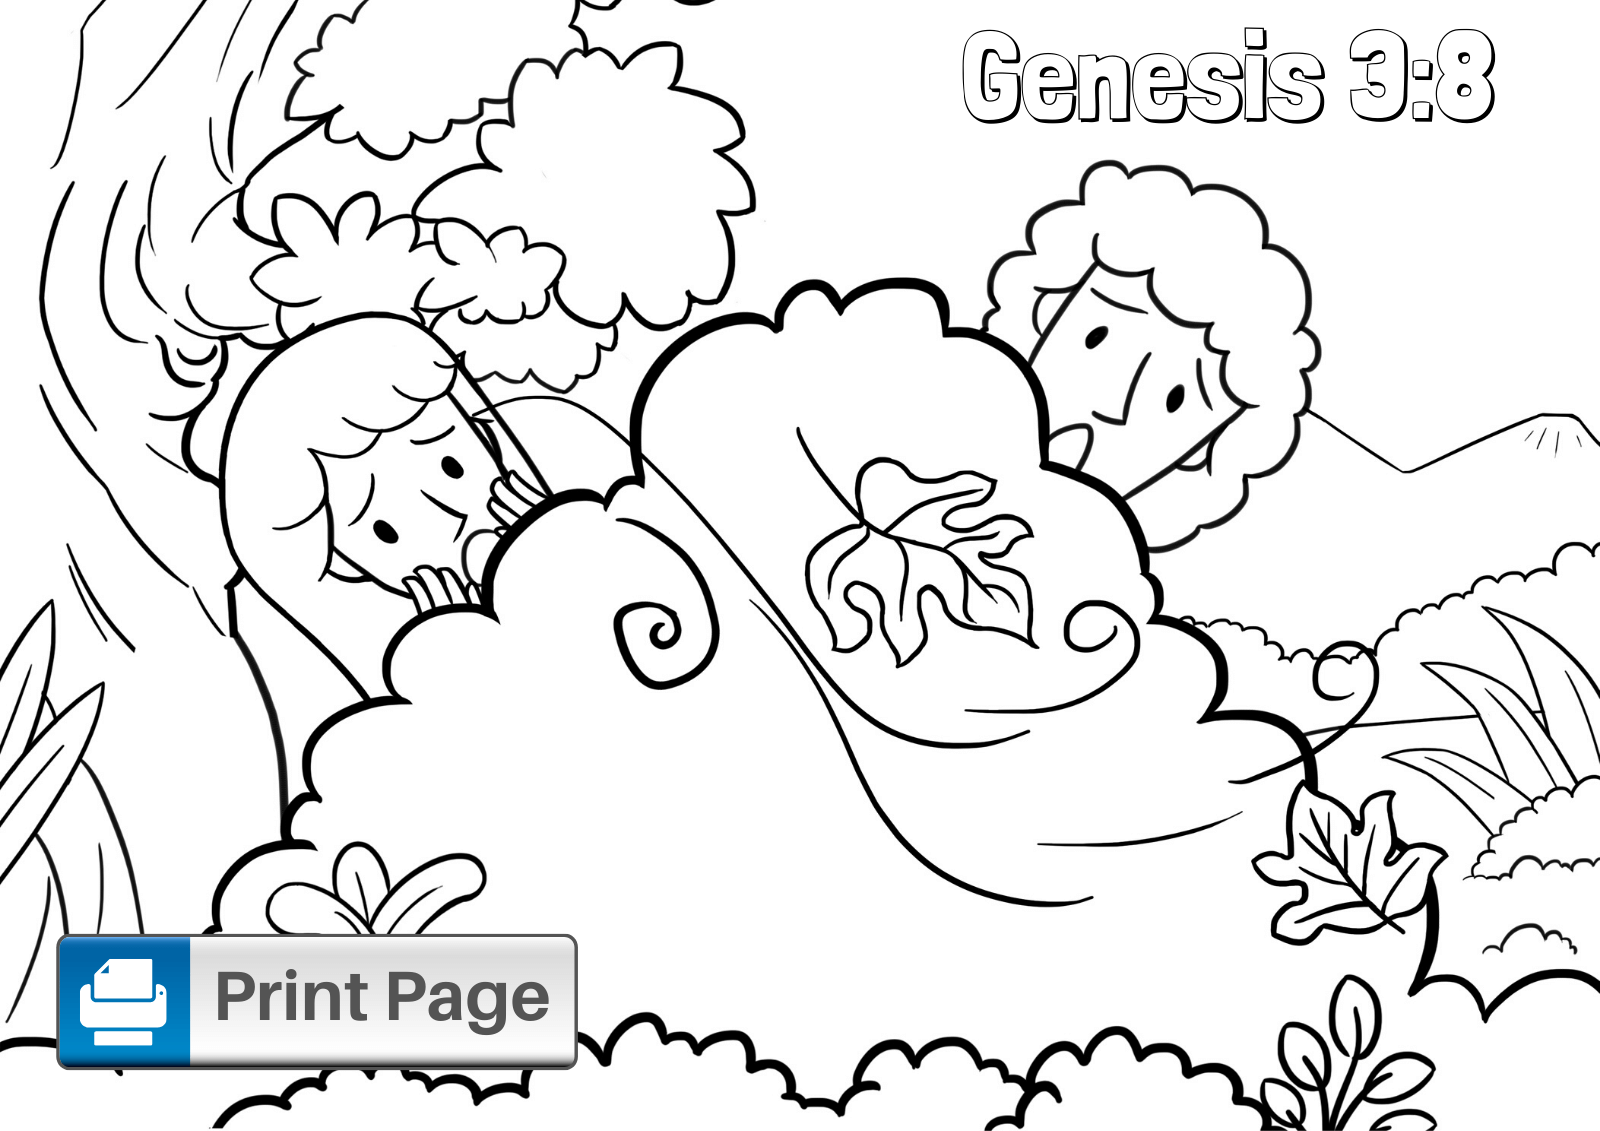 adam and eve coloring page adam and eve in the garden of eden bible coloring page eve and adam coloring page